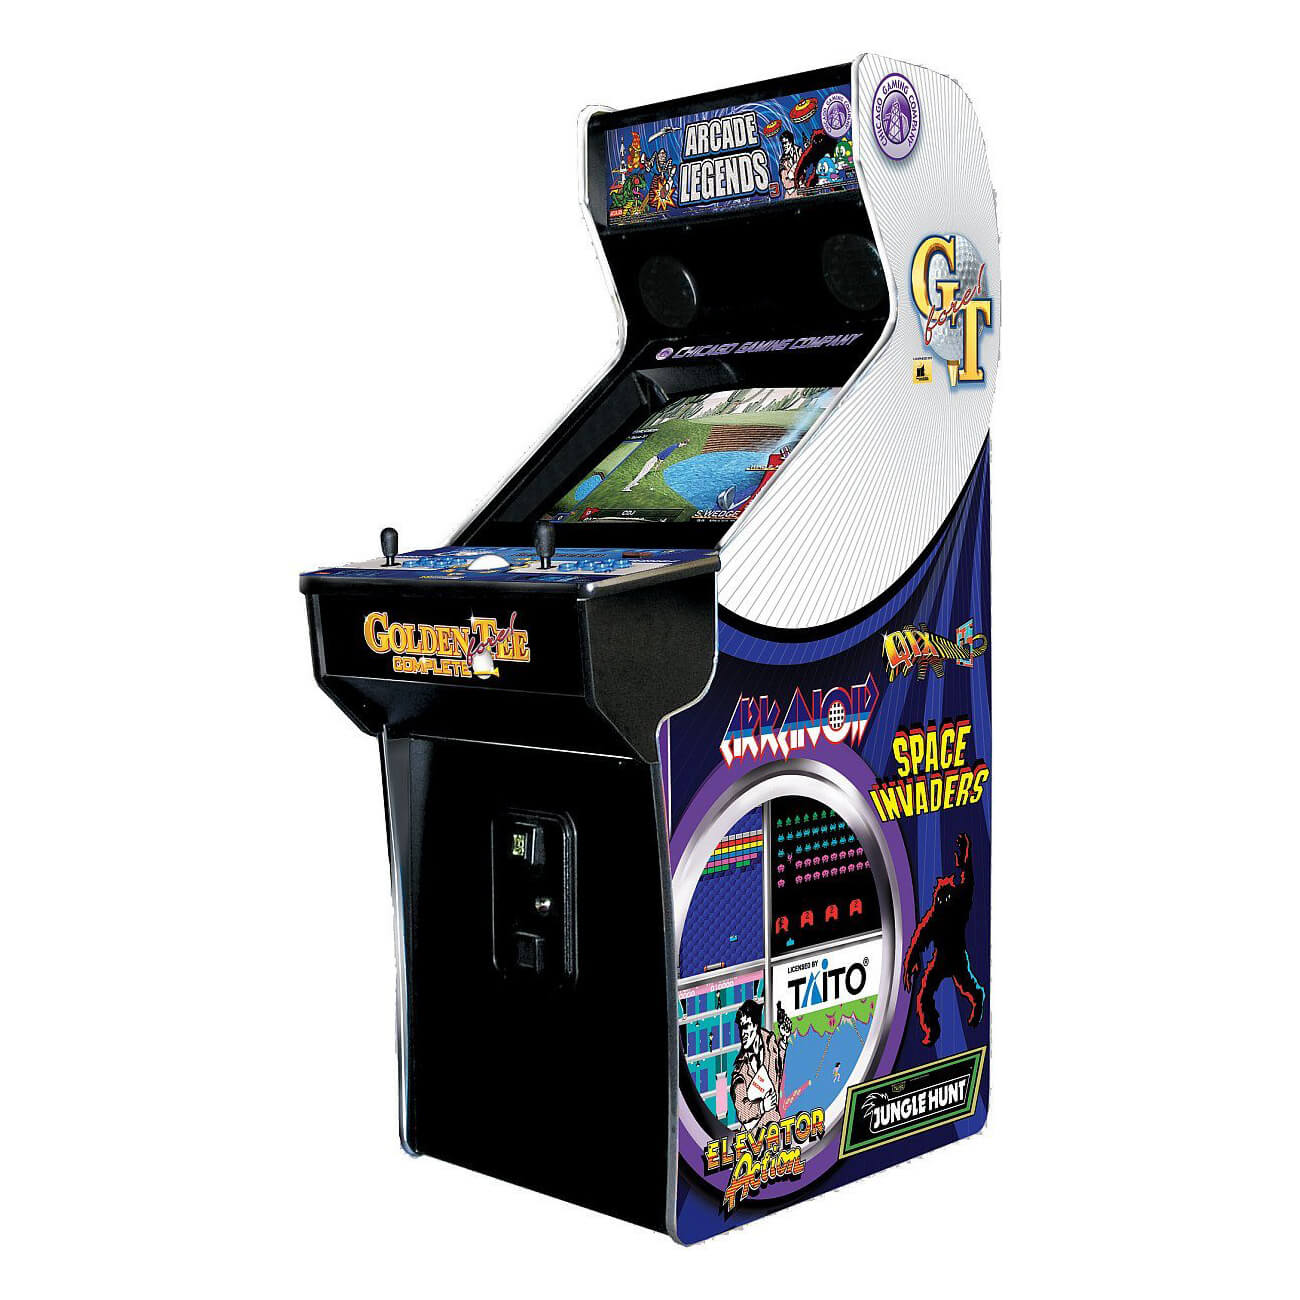 Buy Arcade Legends 3 With Over 100 Games For Only 2999